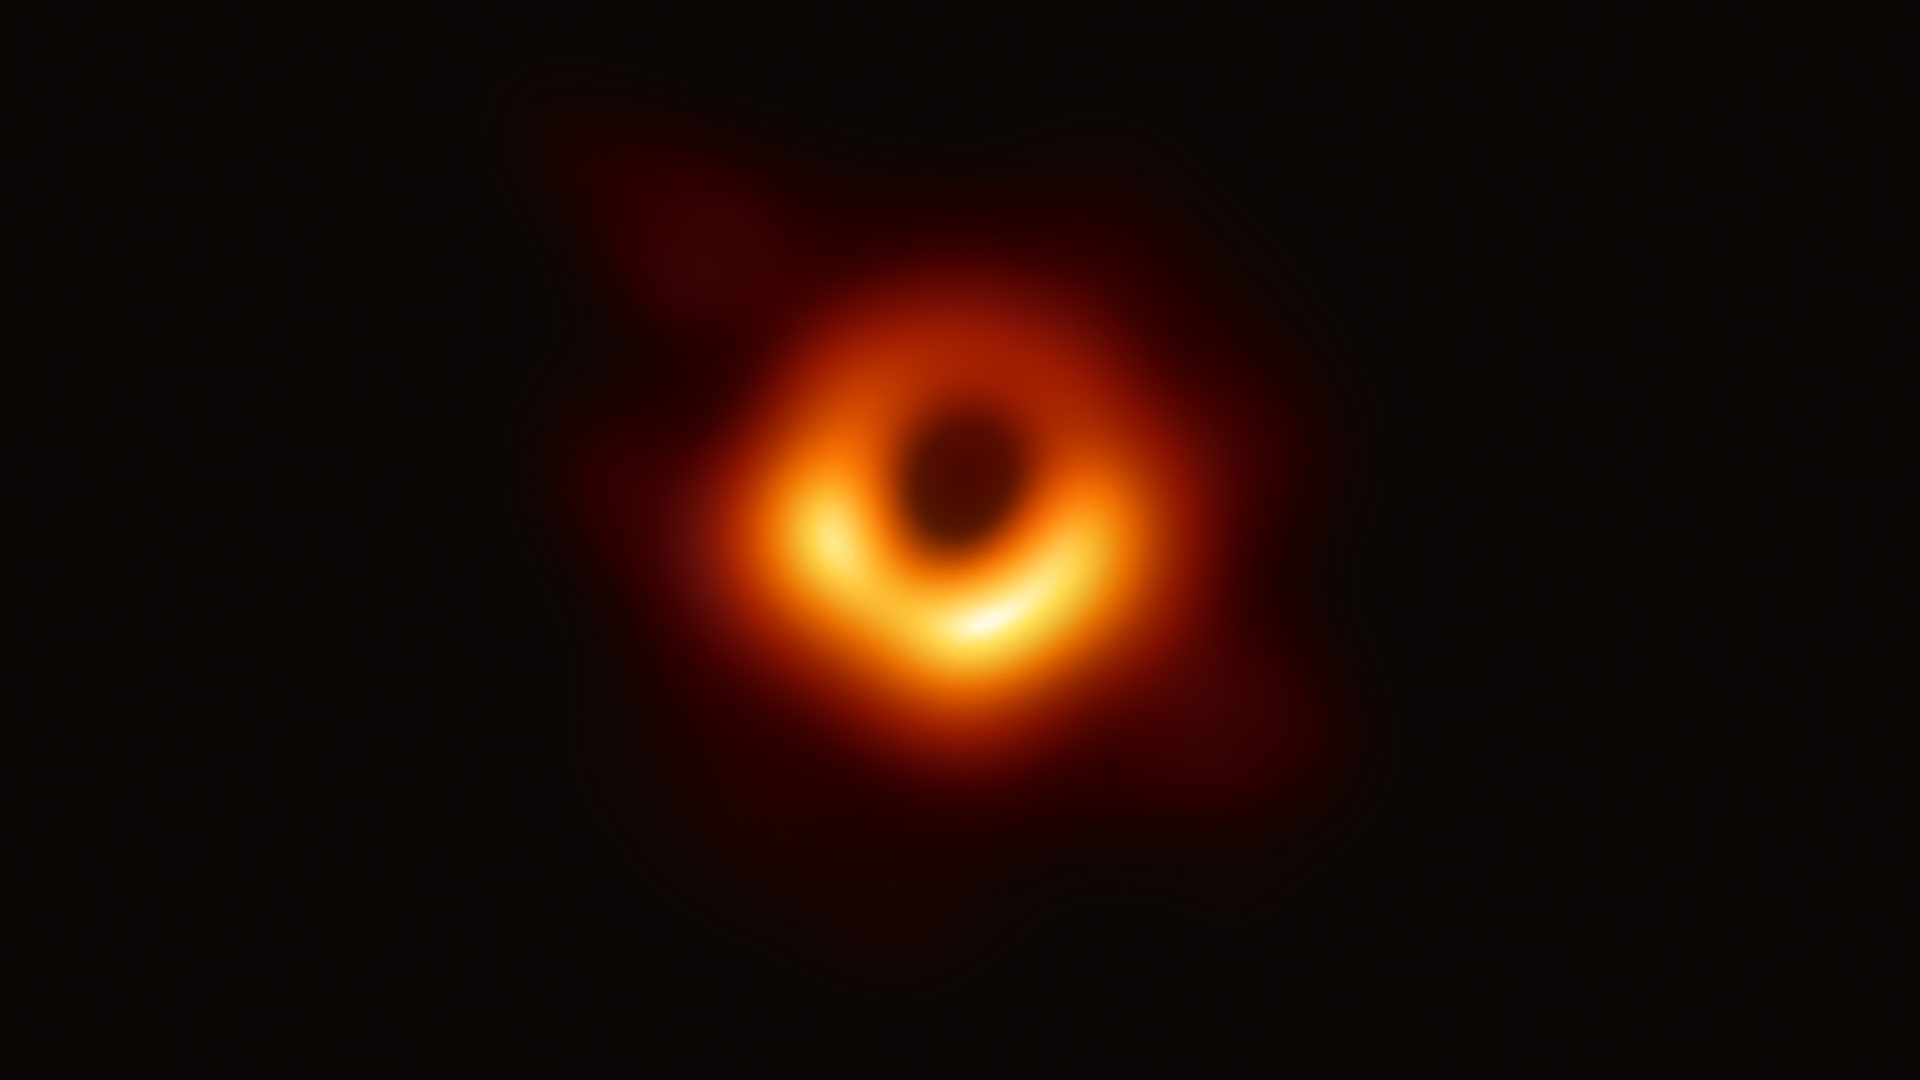 - Black hole - Do black holes move? Astronomers say a massive one is speeding through space as we speak | WJHL